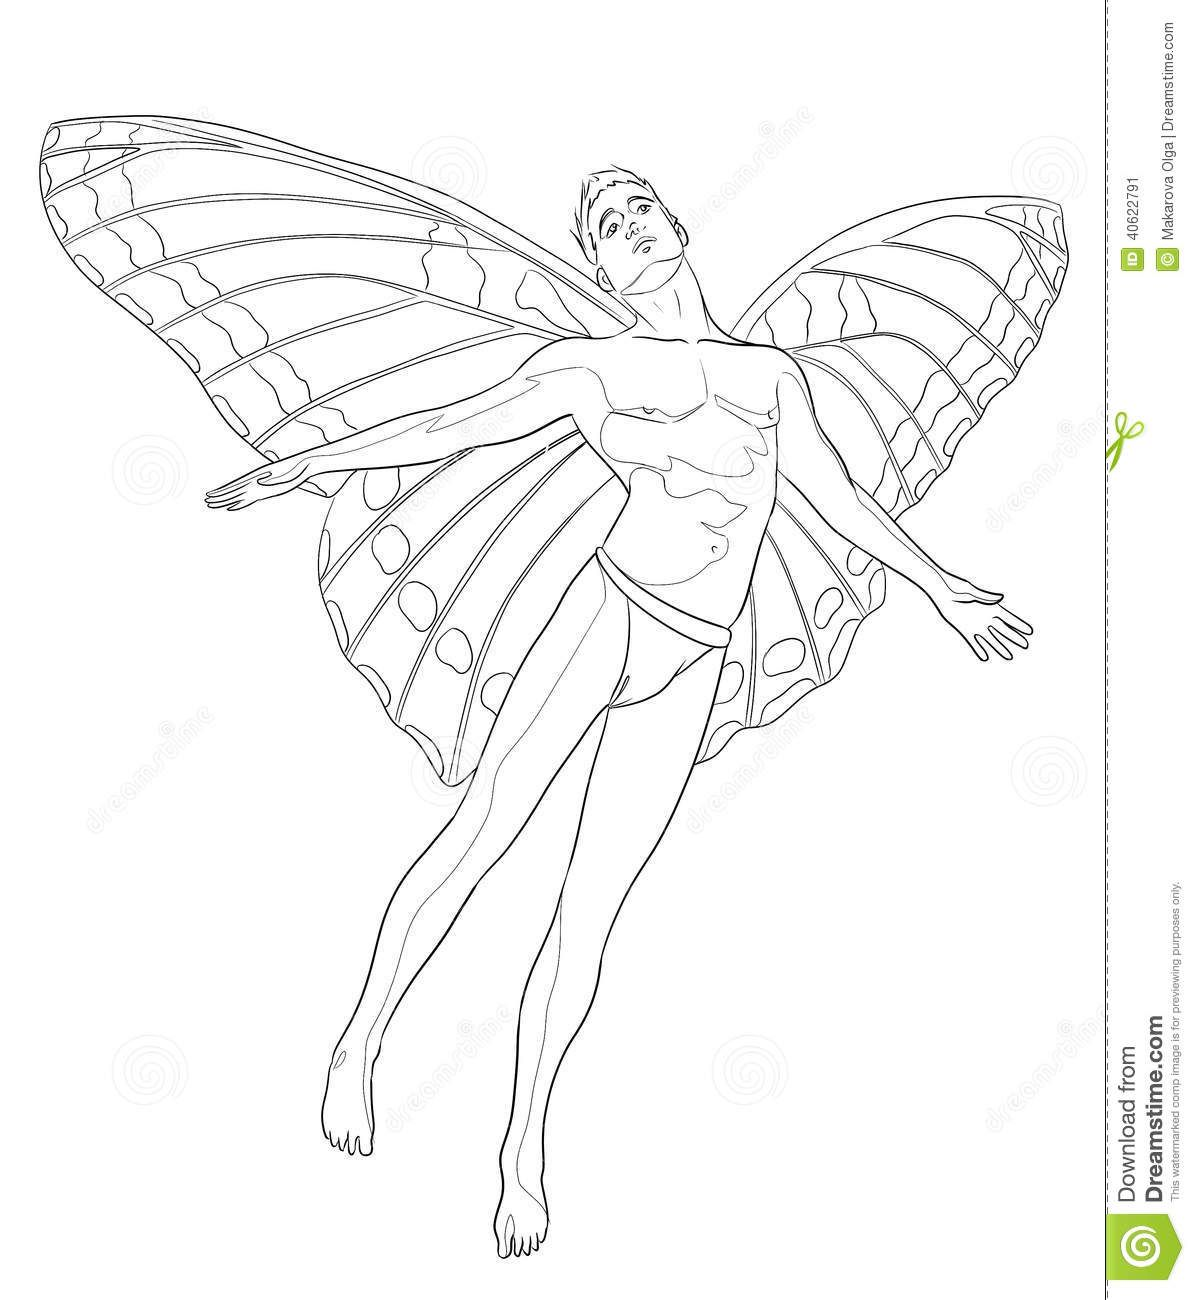 Fairy Man Coloring Page Fairy Drawings Toddler Coloring Book Fairy Coloring